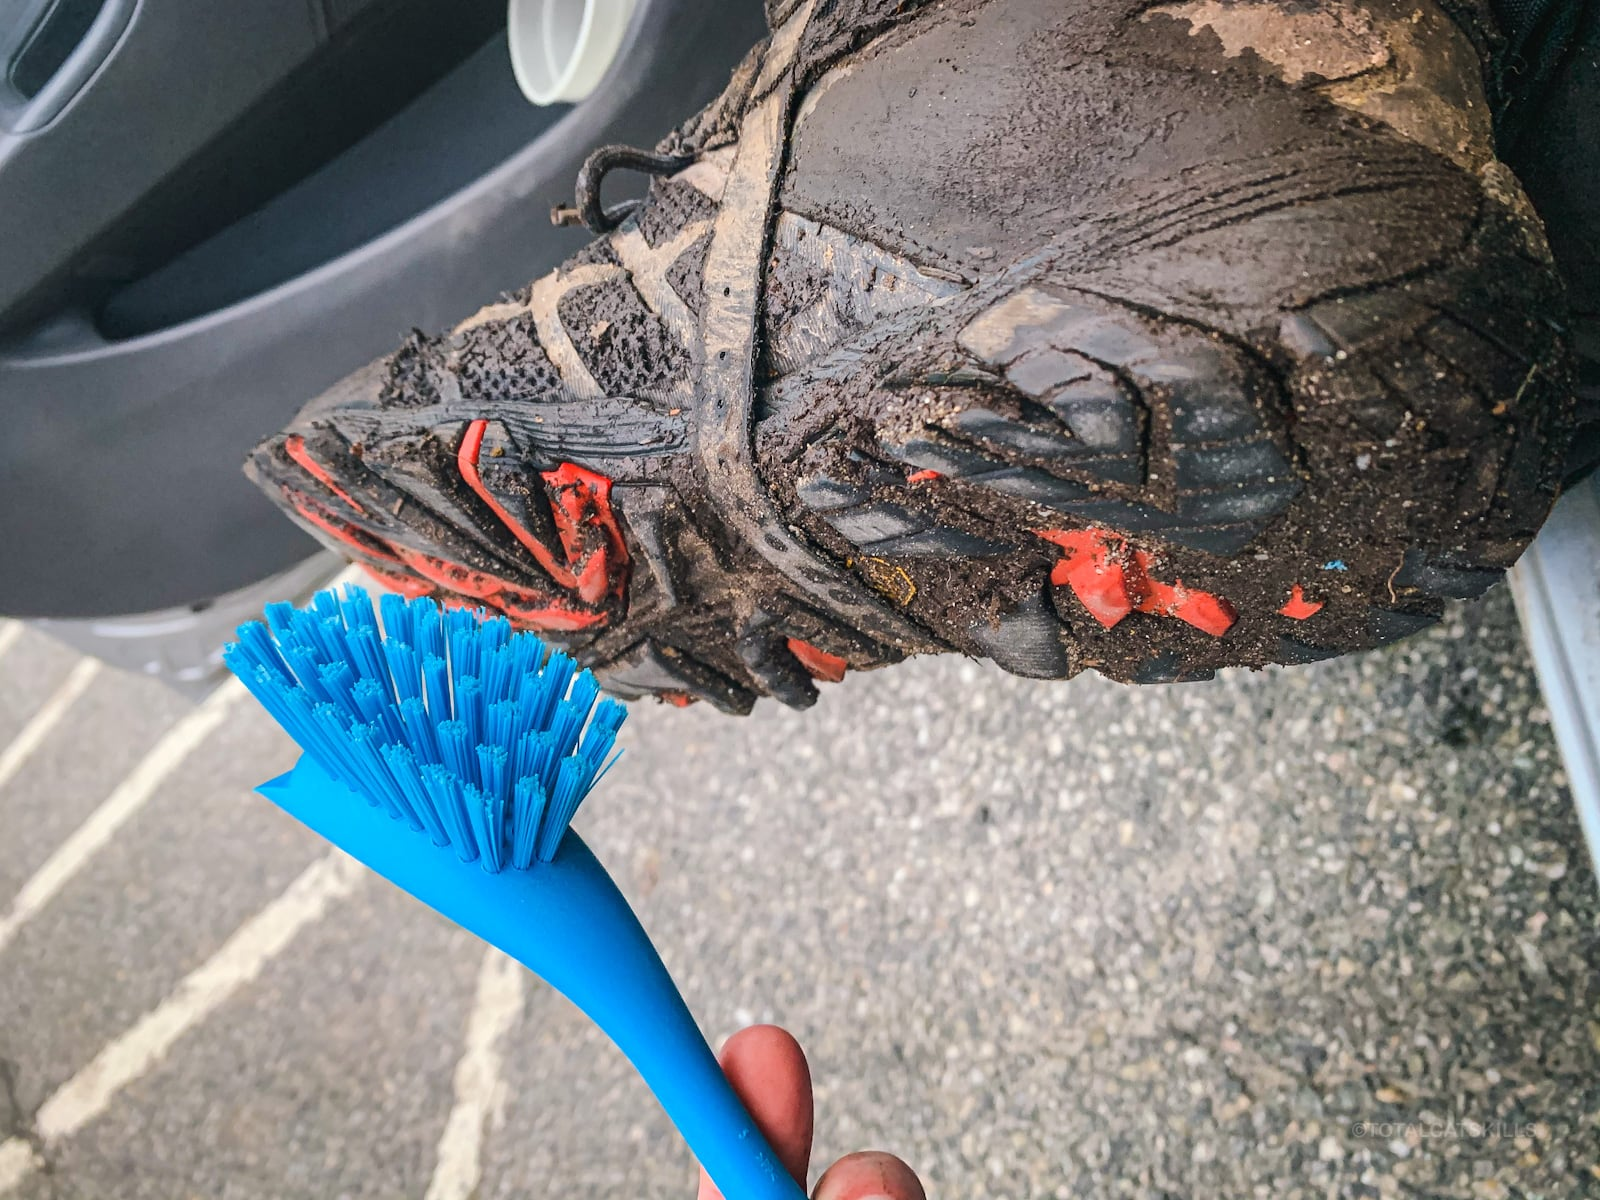 blue plastic brush cleaning dirt off bottom of dirty hiking hoot